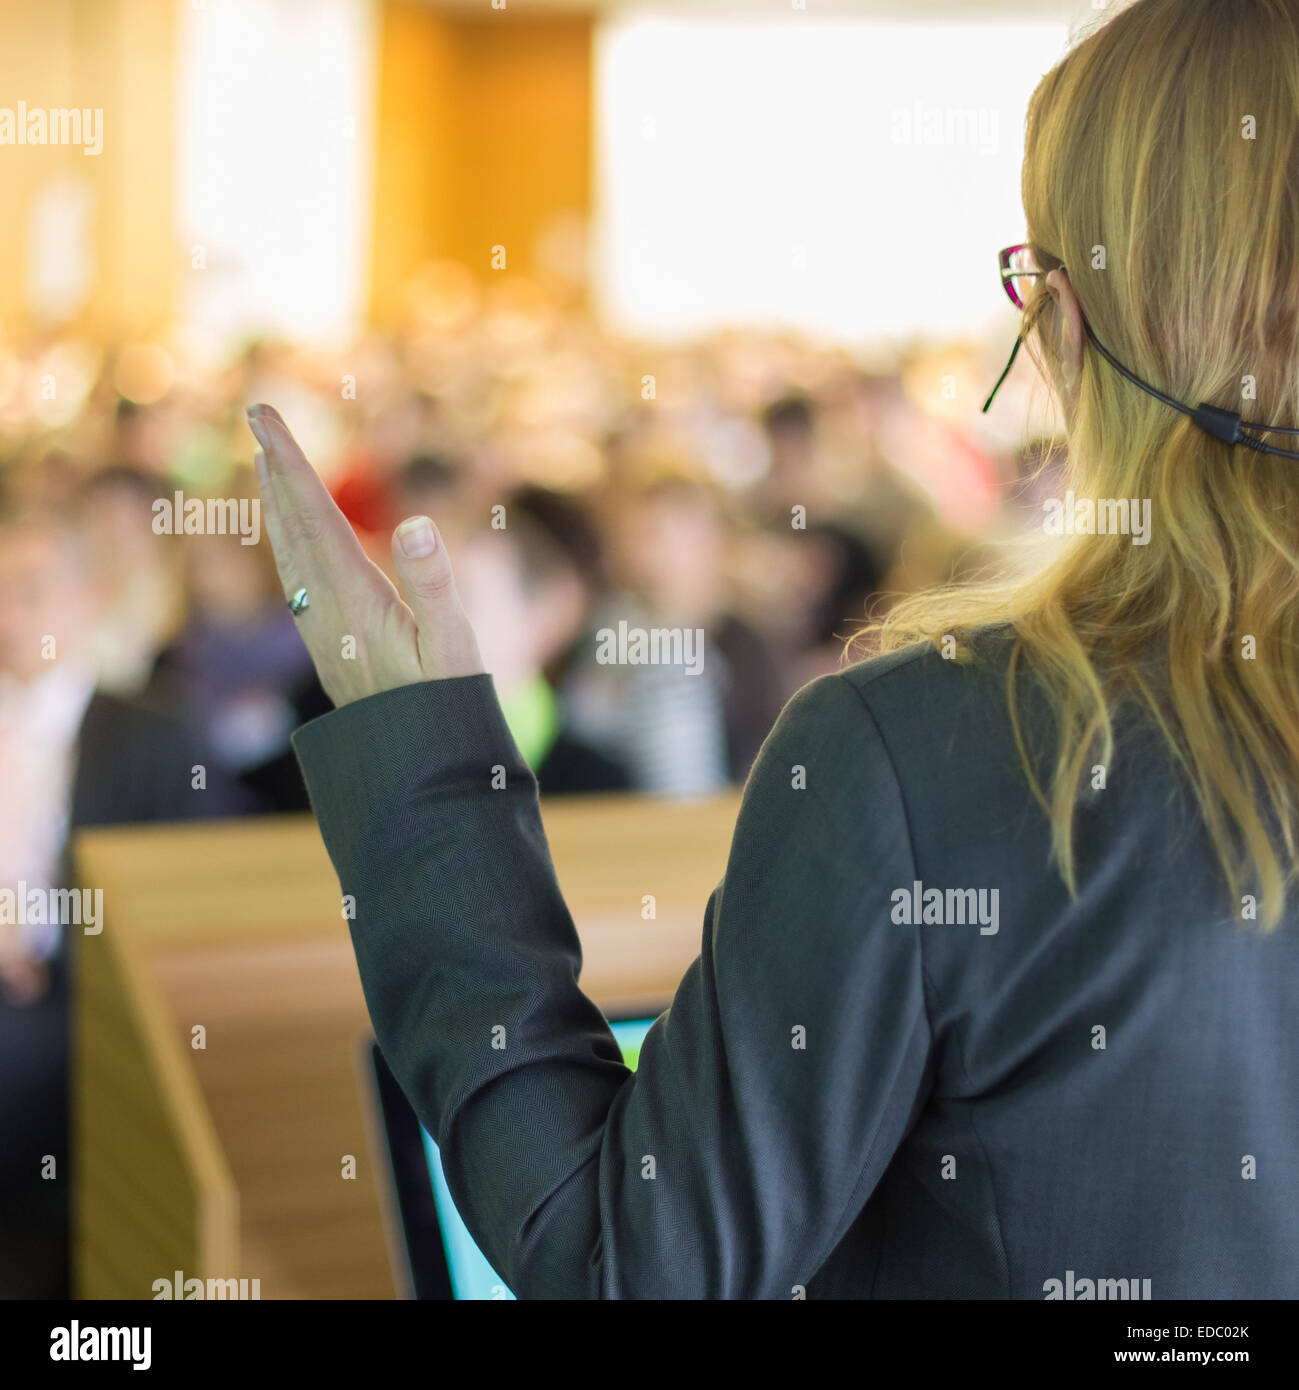 Speaker at Business Conference and Presentation. - Stock Image